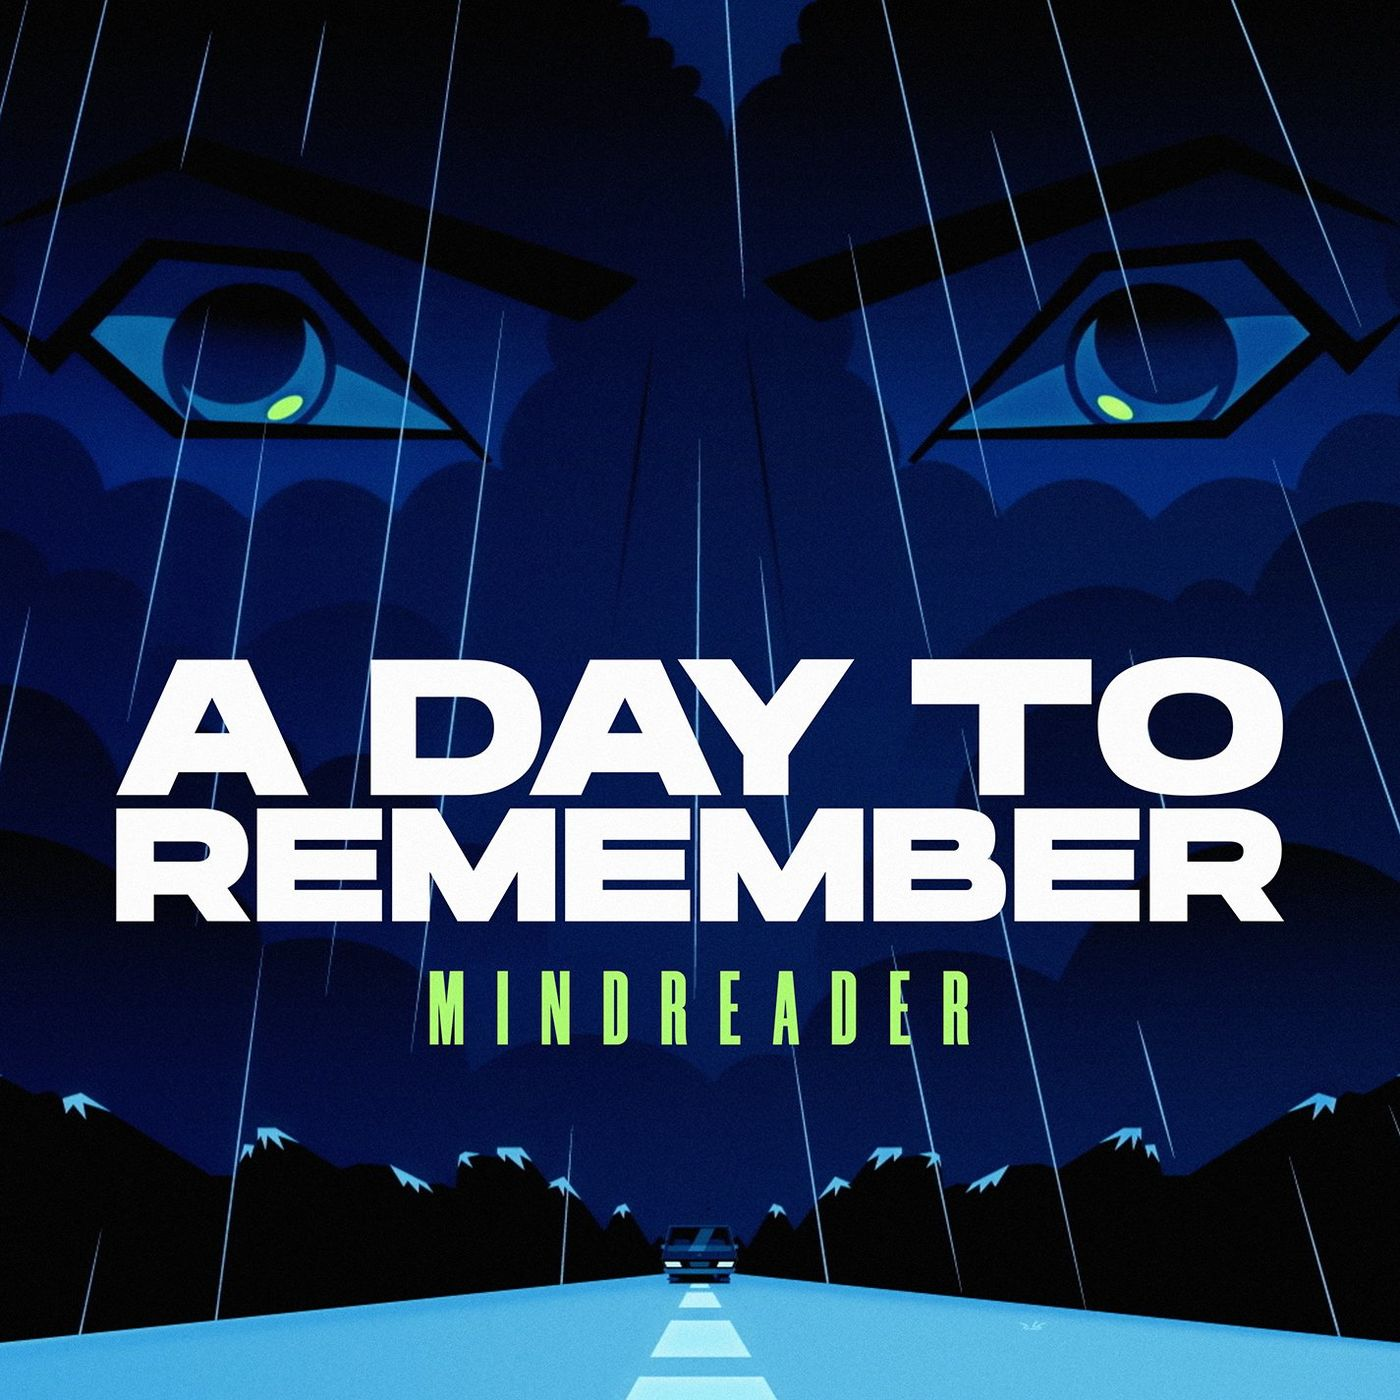 A Day to Remember - Mindreader [single] (2020)